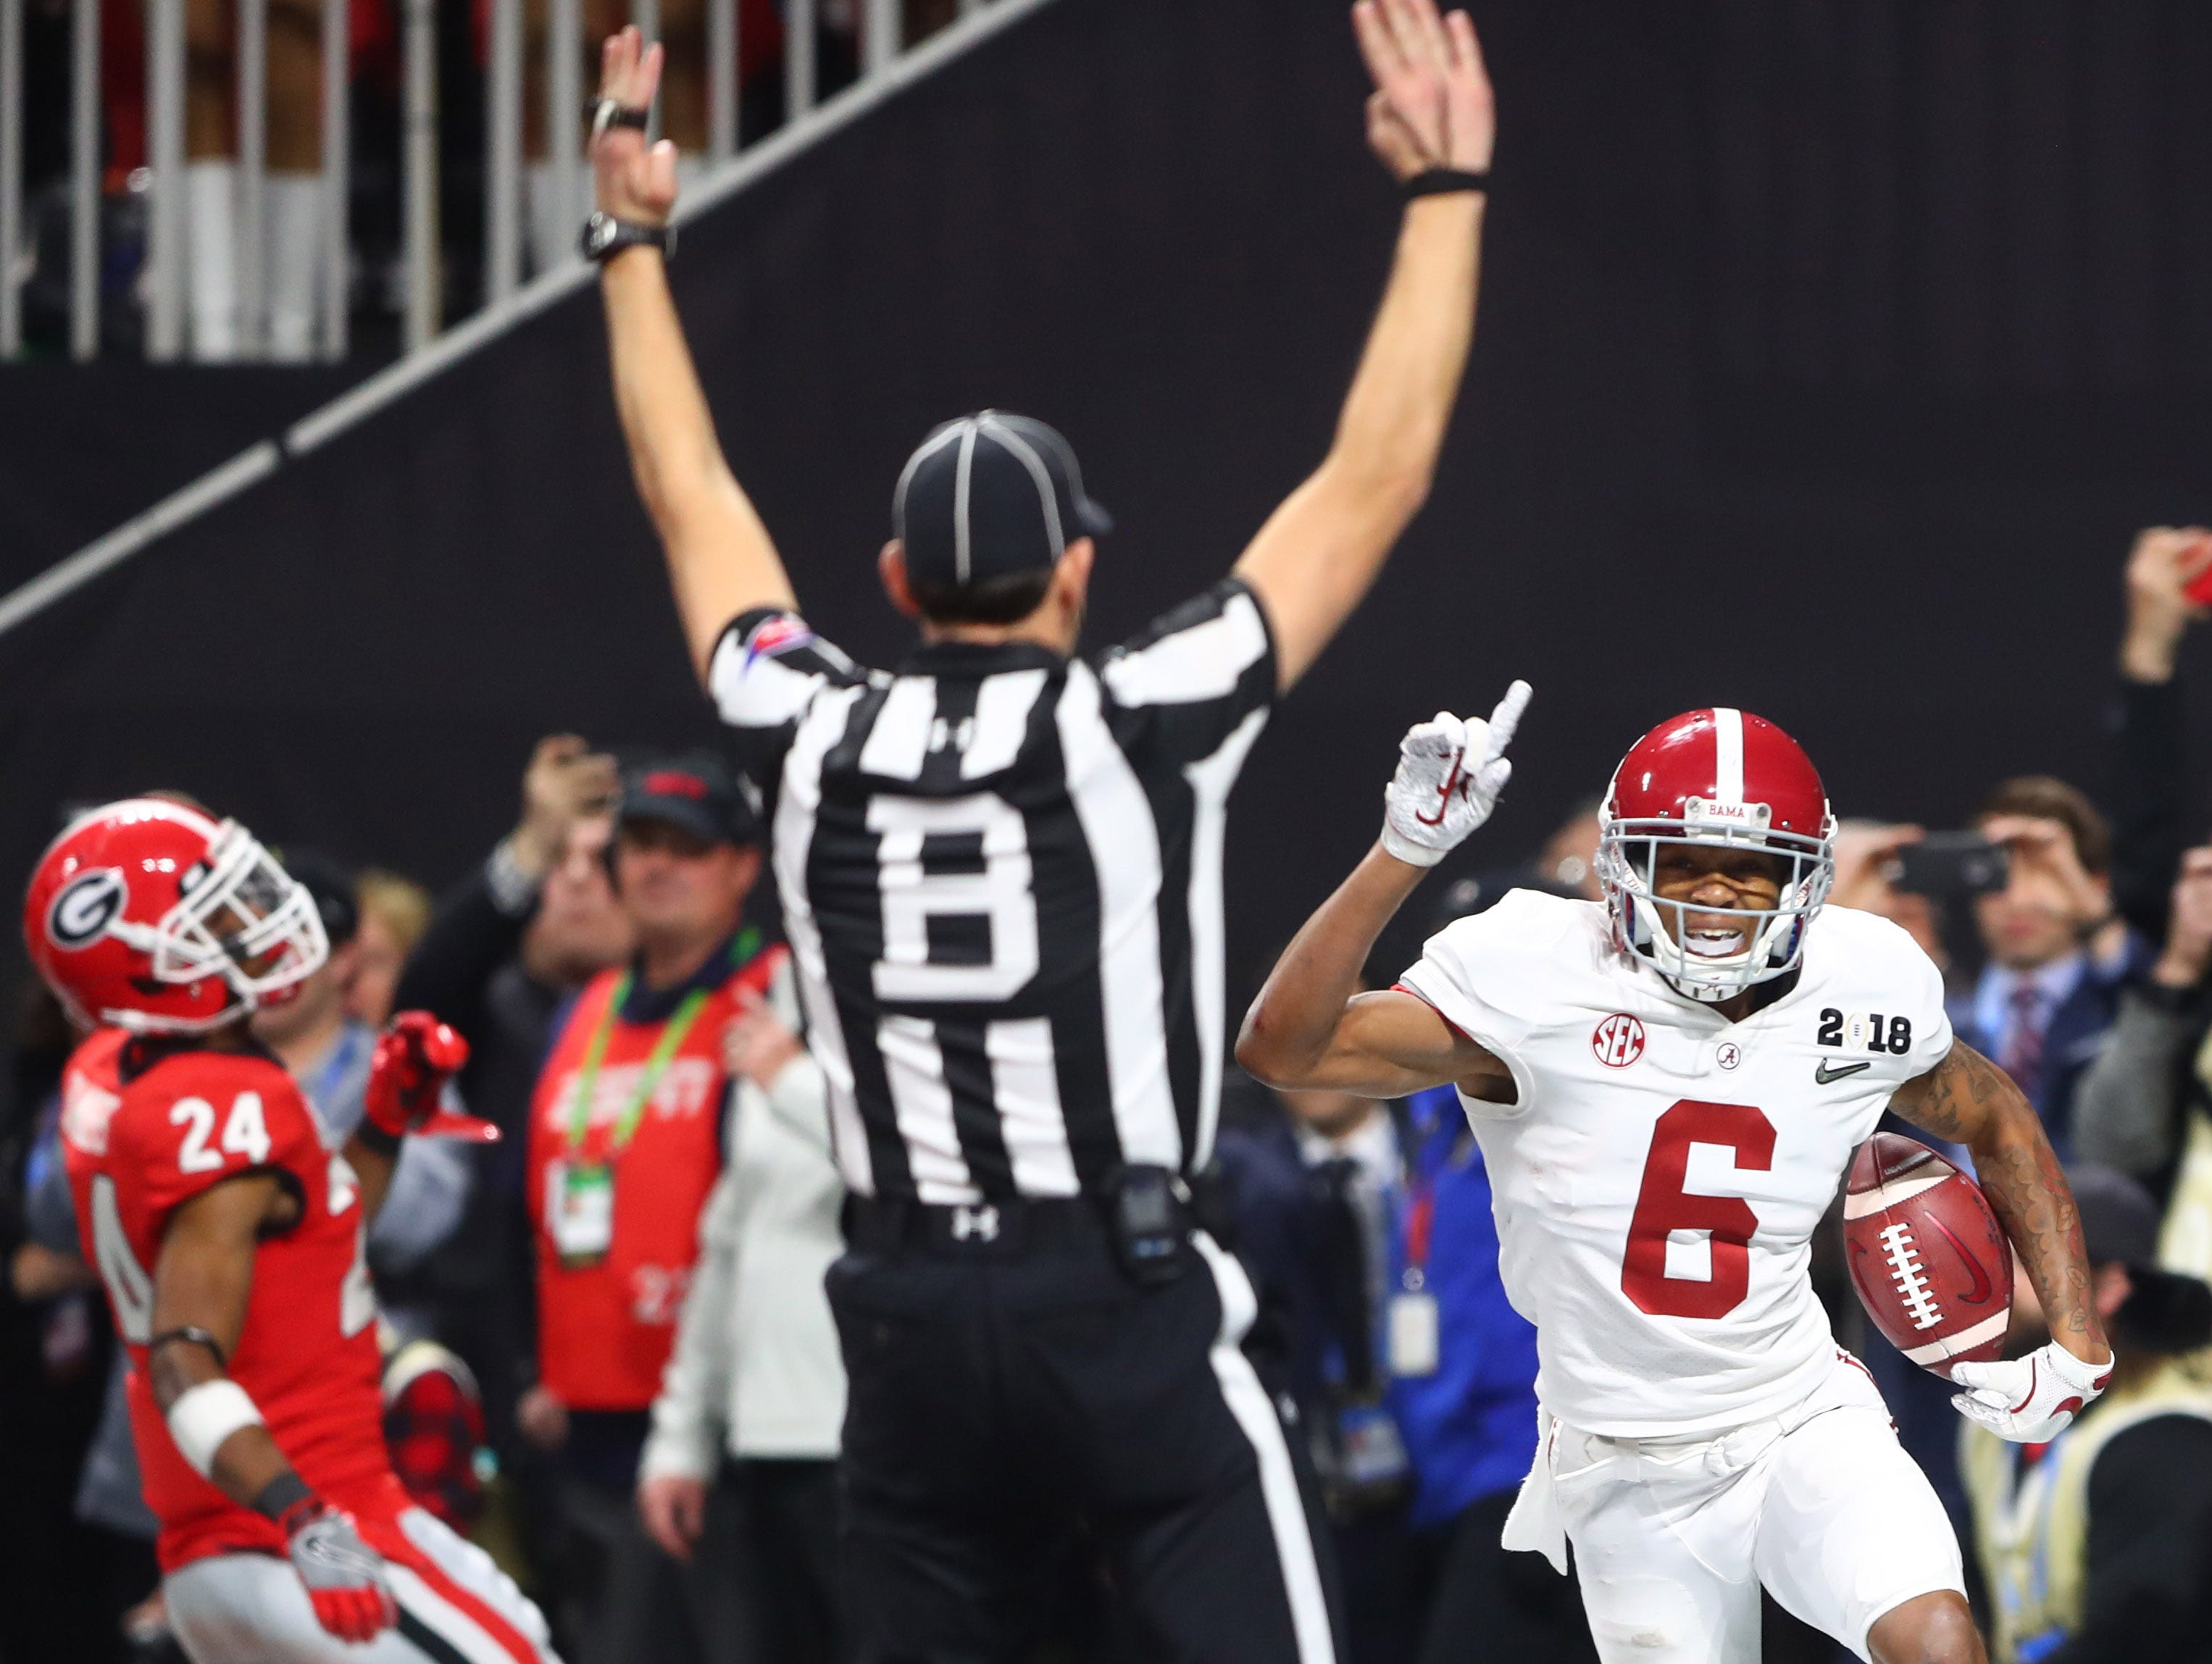 Jan. 8: Alabama Crimson Tide wide receiver DeVonta Smith (6) celebrates after catching the game-winning touchdown in overtime against the Georgia Bulldogs to win the national championship.